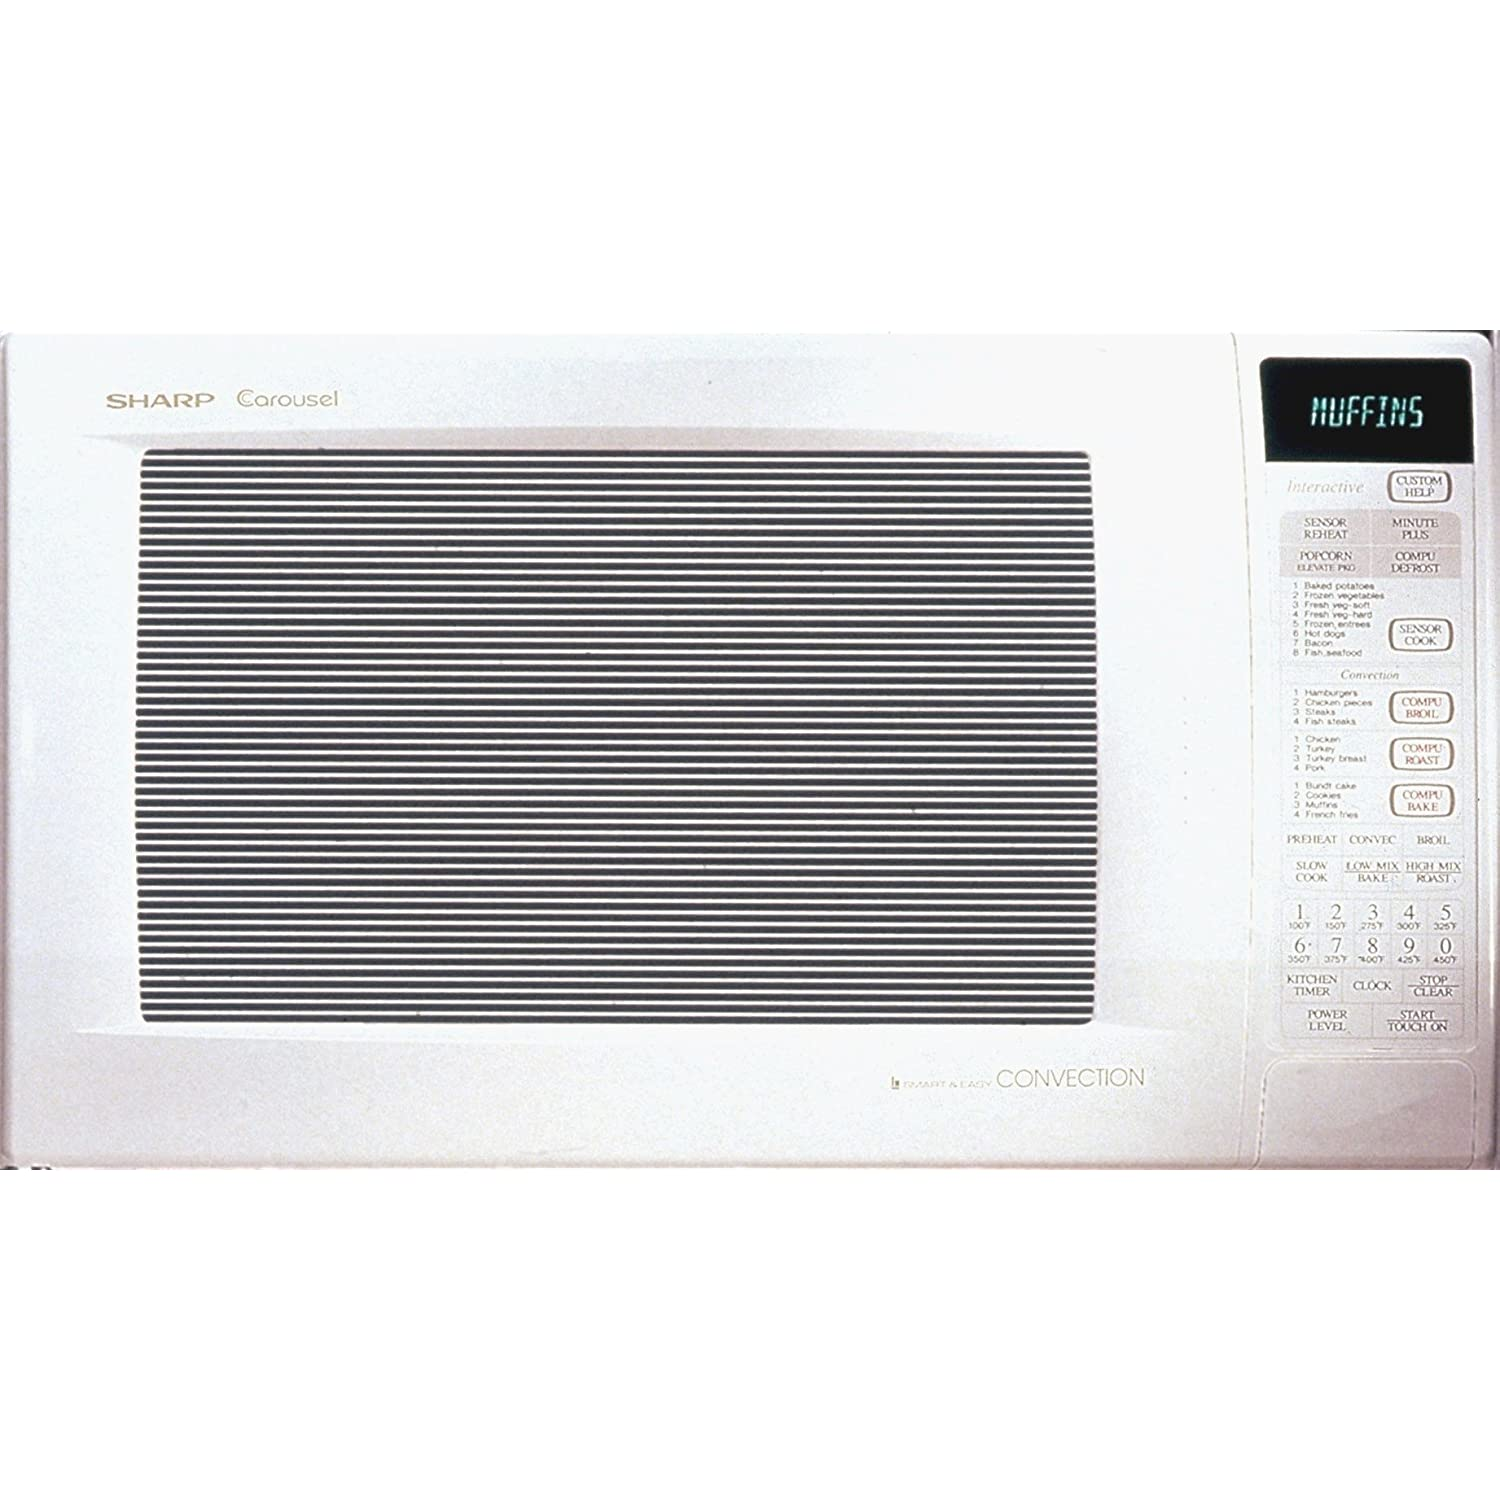 Convection Microwave Vs Speed Oven: Microwave Ovens Vs. Microwave/Convection Ovens Vs